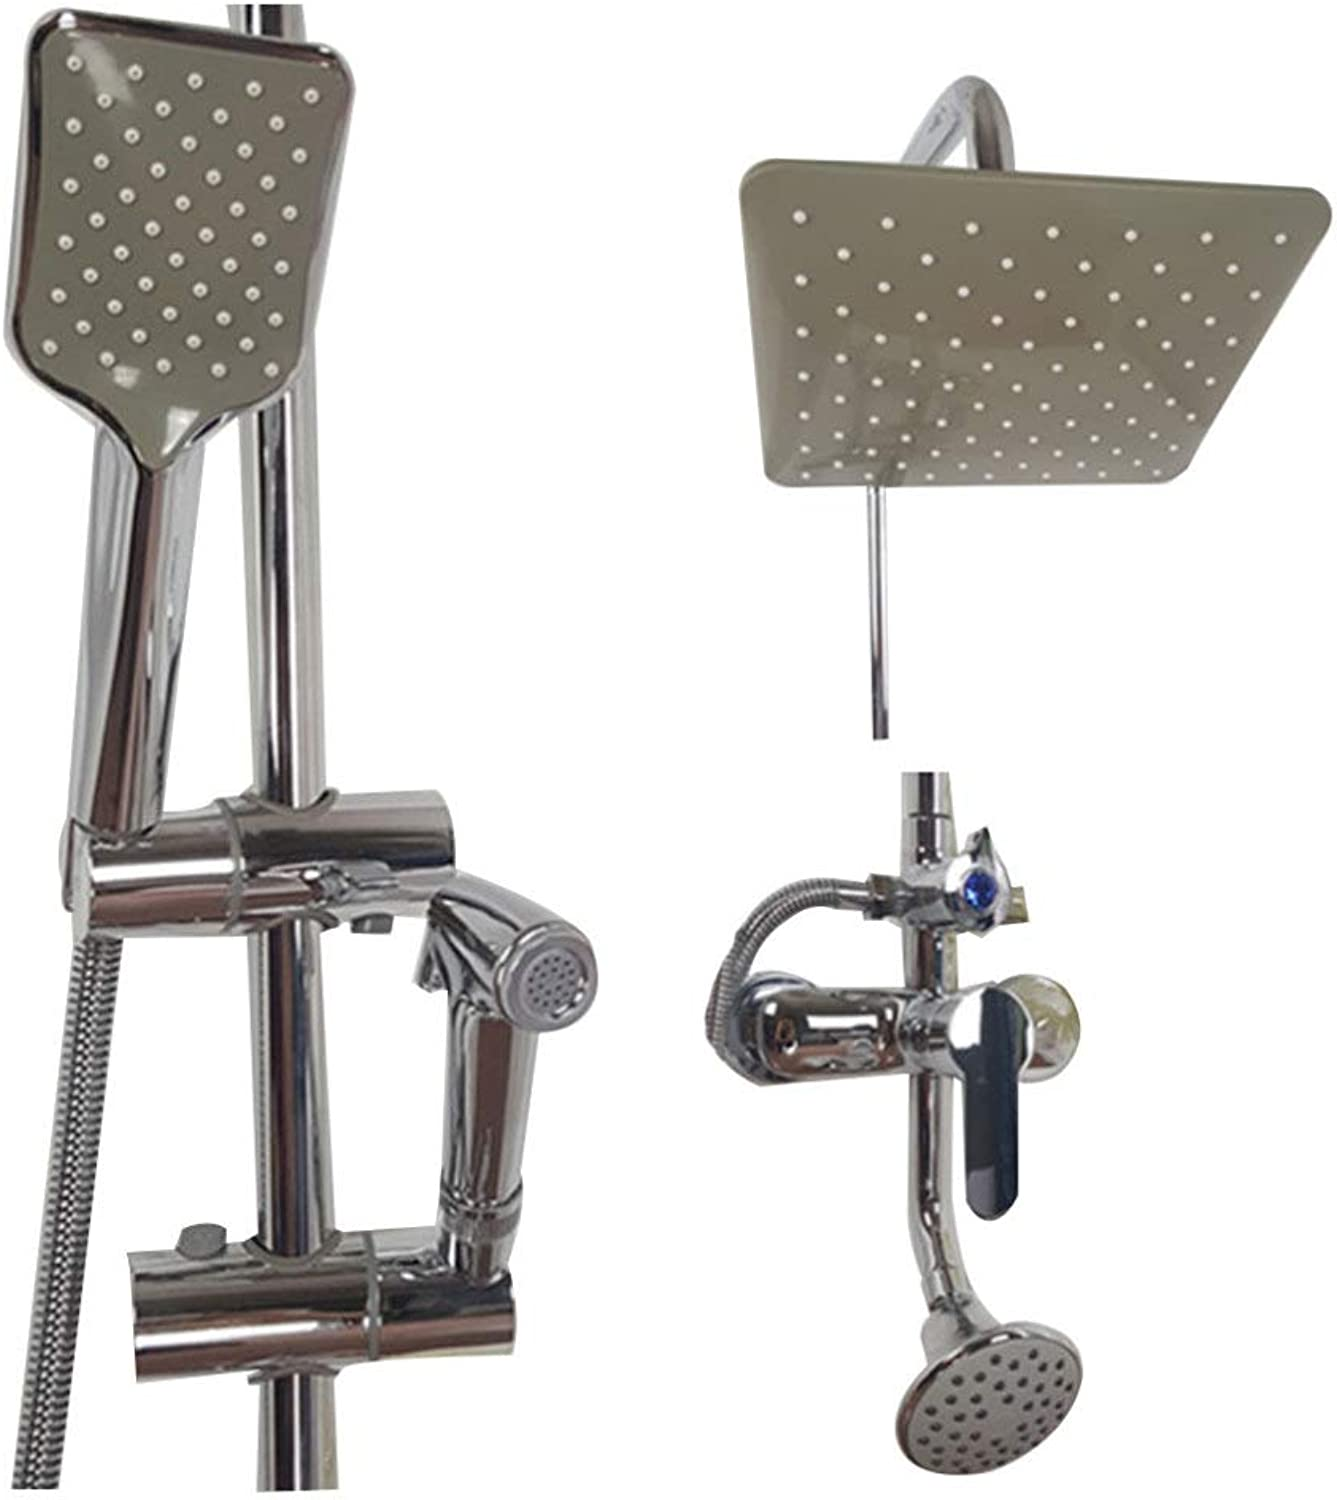 DYMAS Shower,Four-Stop Water Hose Lifting Type Shower Faucet